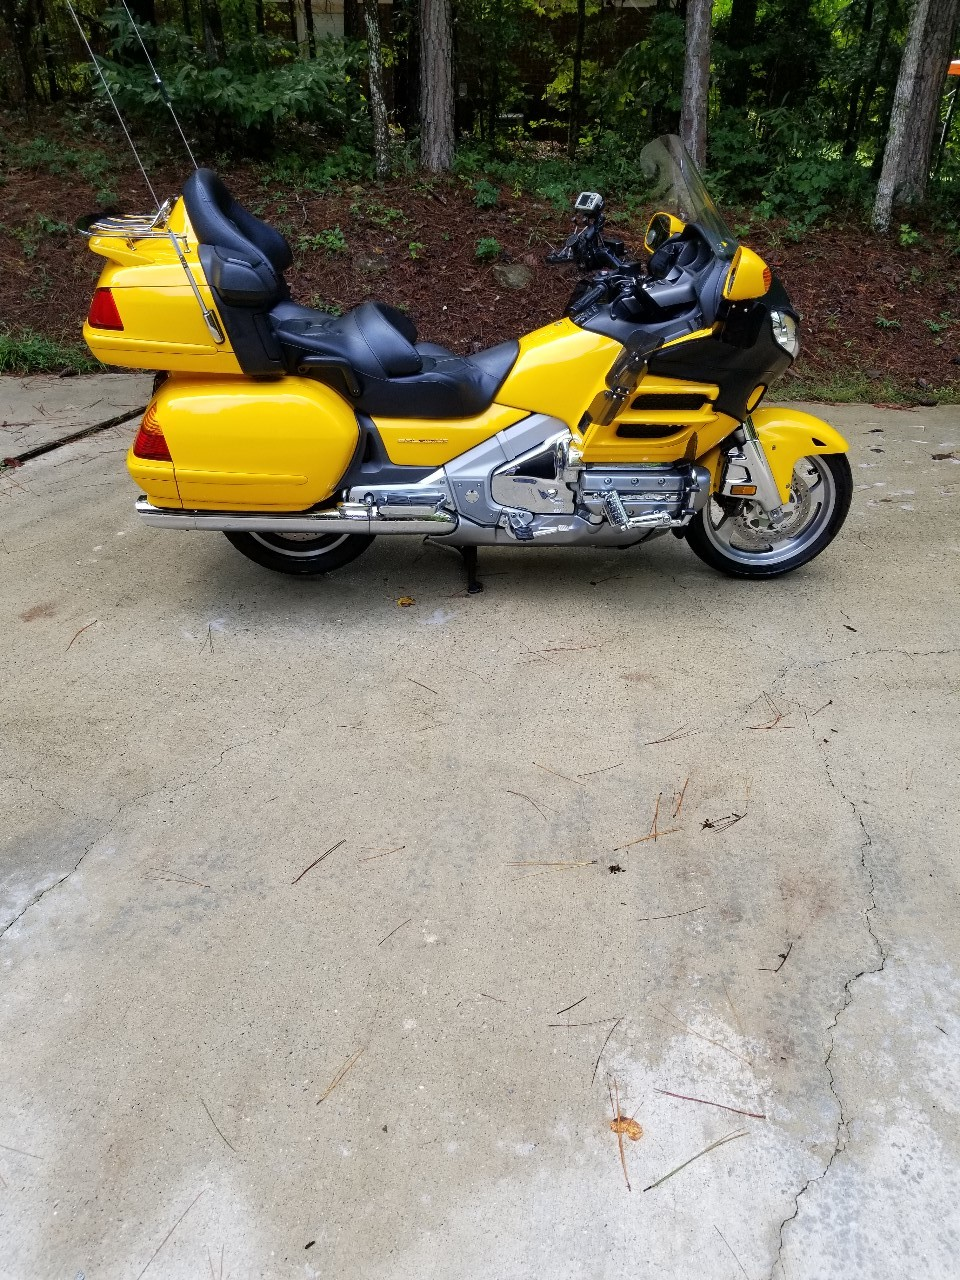 Georgia - Gold Wing 1800 For Sale - Honda Motorcycle